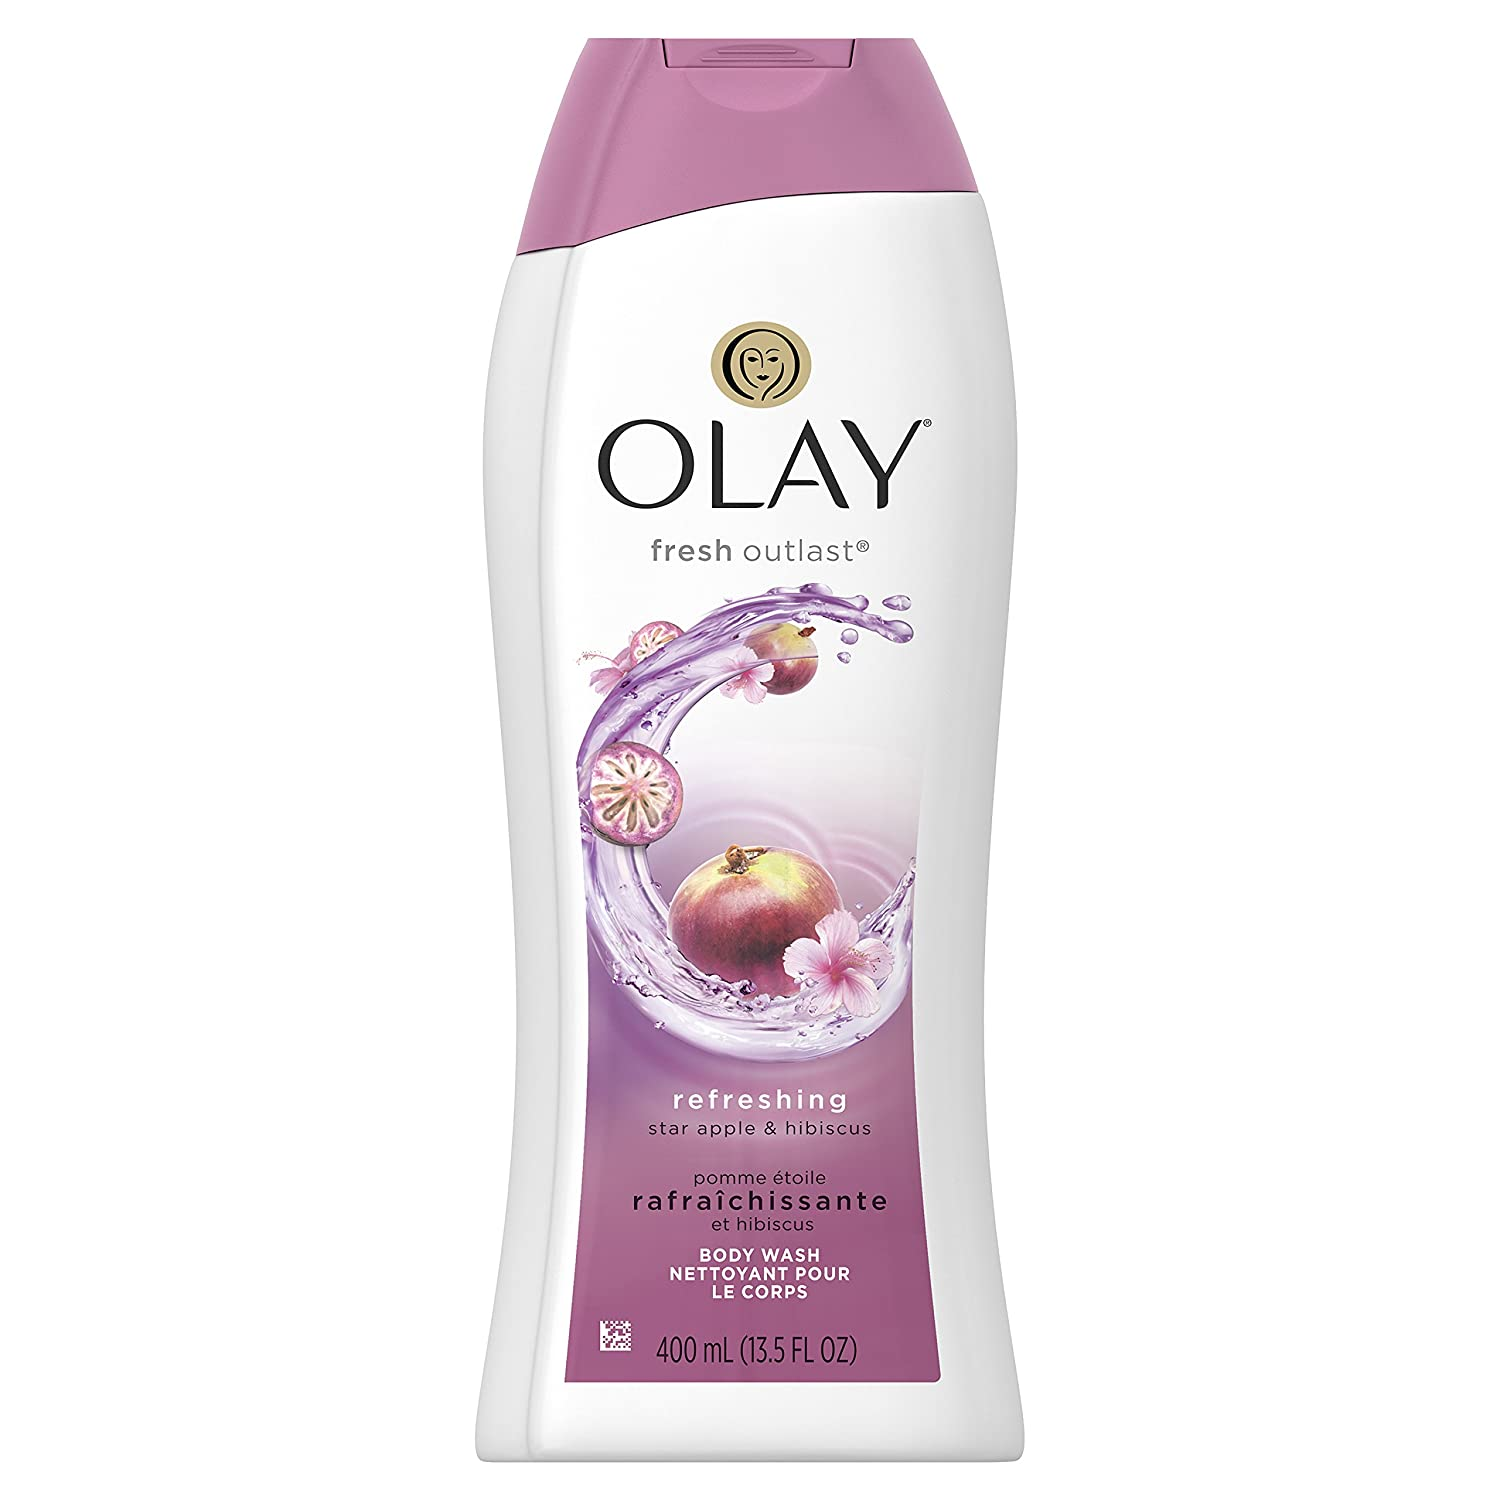 Olay Fresh Outlast Star Apple and Hibiscus Body Wash, 400 ml Procter and Gamble